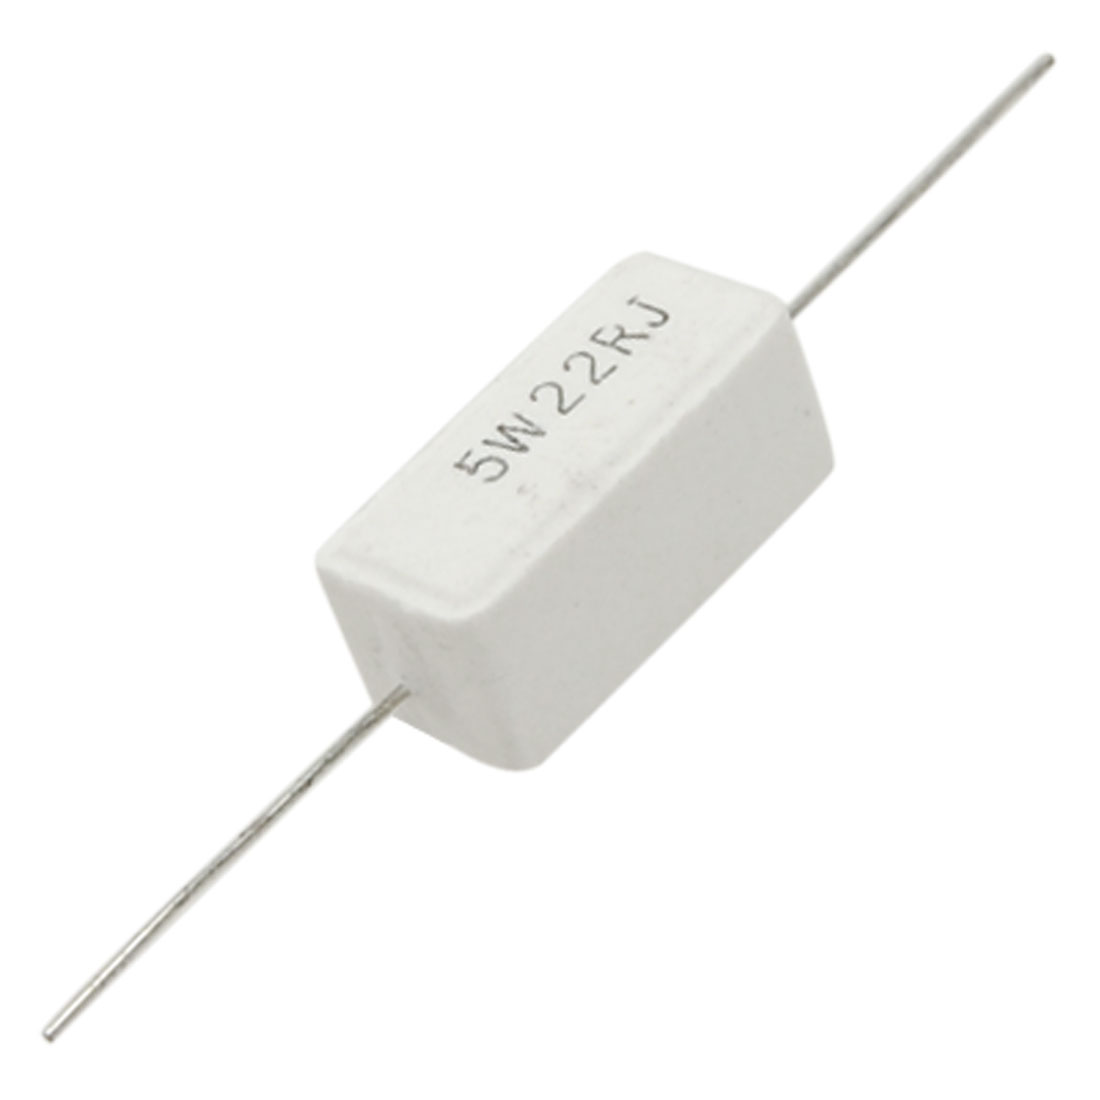 22 R Ohm 5% 5W Watt Ceramic Cement Power Resistor x10pcs